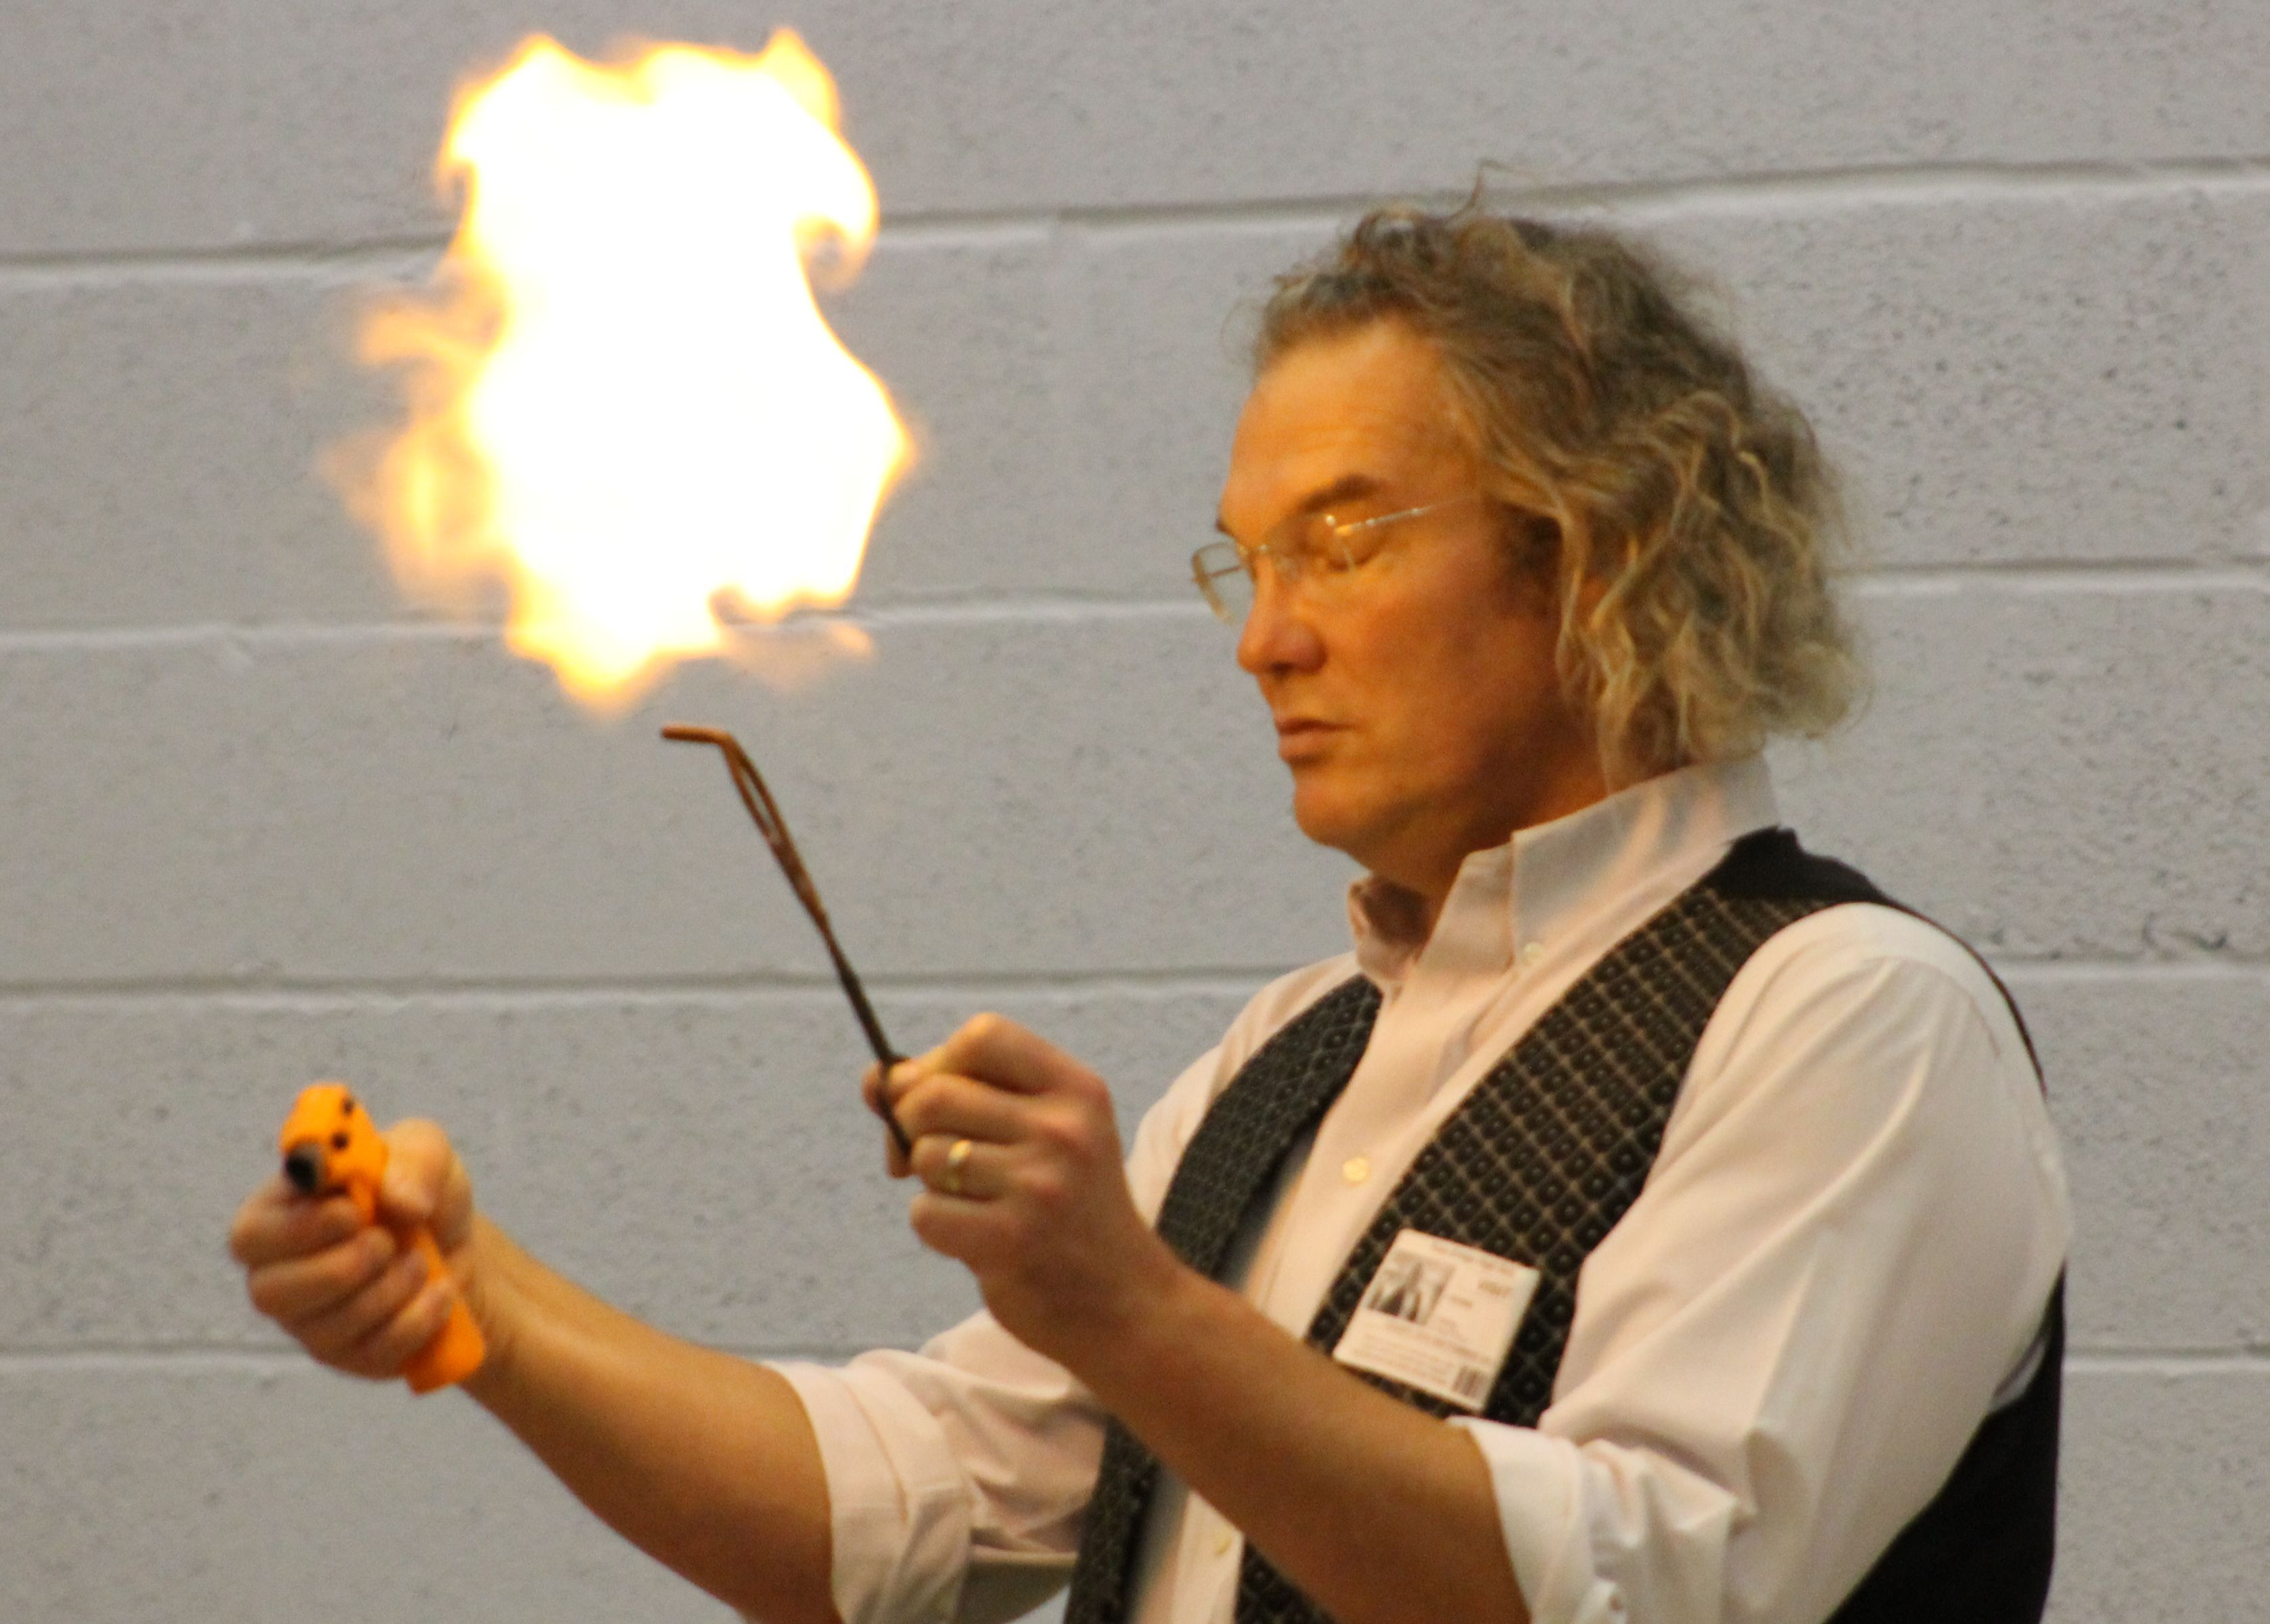 Ian B Dunne playing with fire at a science show